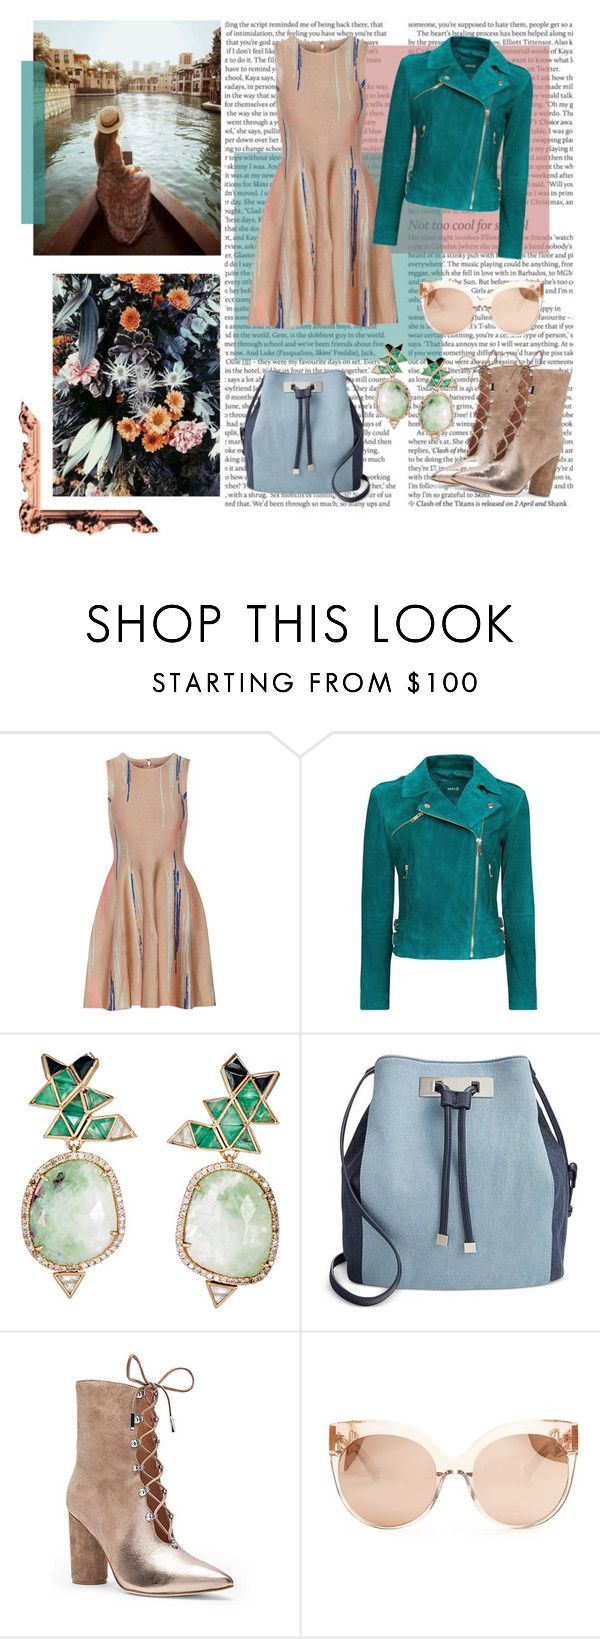 """""""October 23rd 2016"""" by rania ❤ liked on Polyvore featuring Paula Cademartori, ASOS, Issa, MANGO, Nak Armstrong, INC International Concepts, Sigerson Morrison and Linda Farrow"""